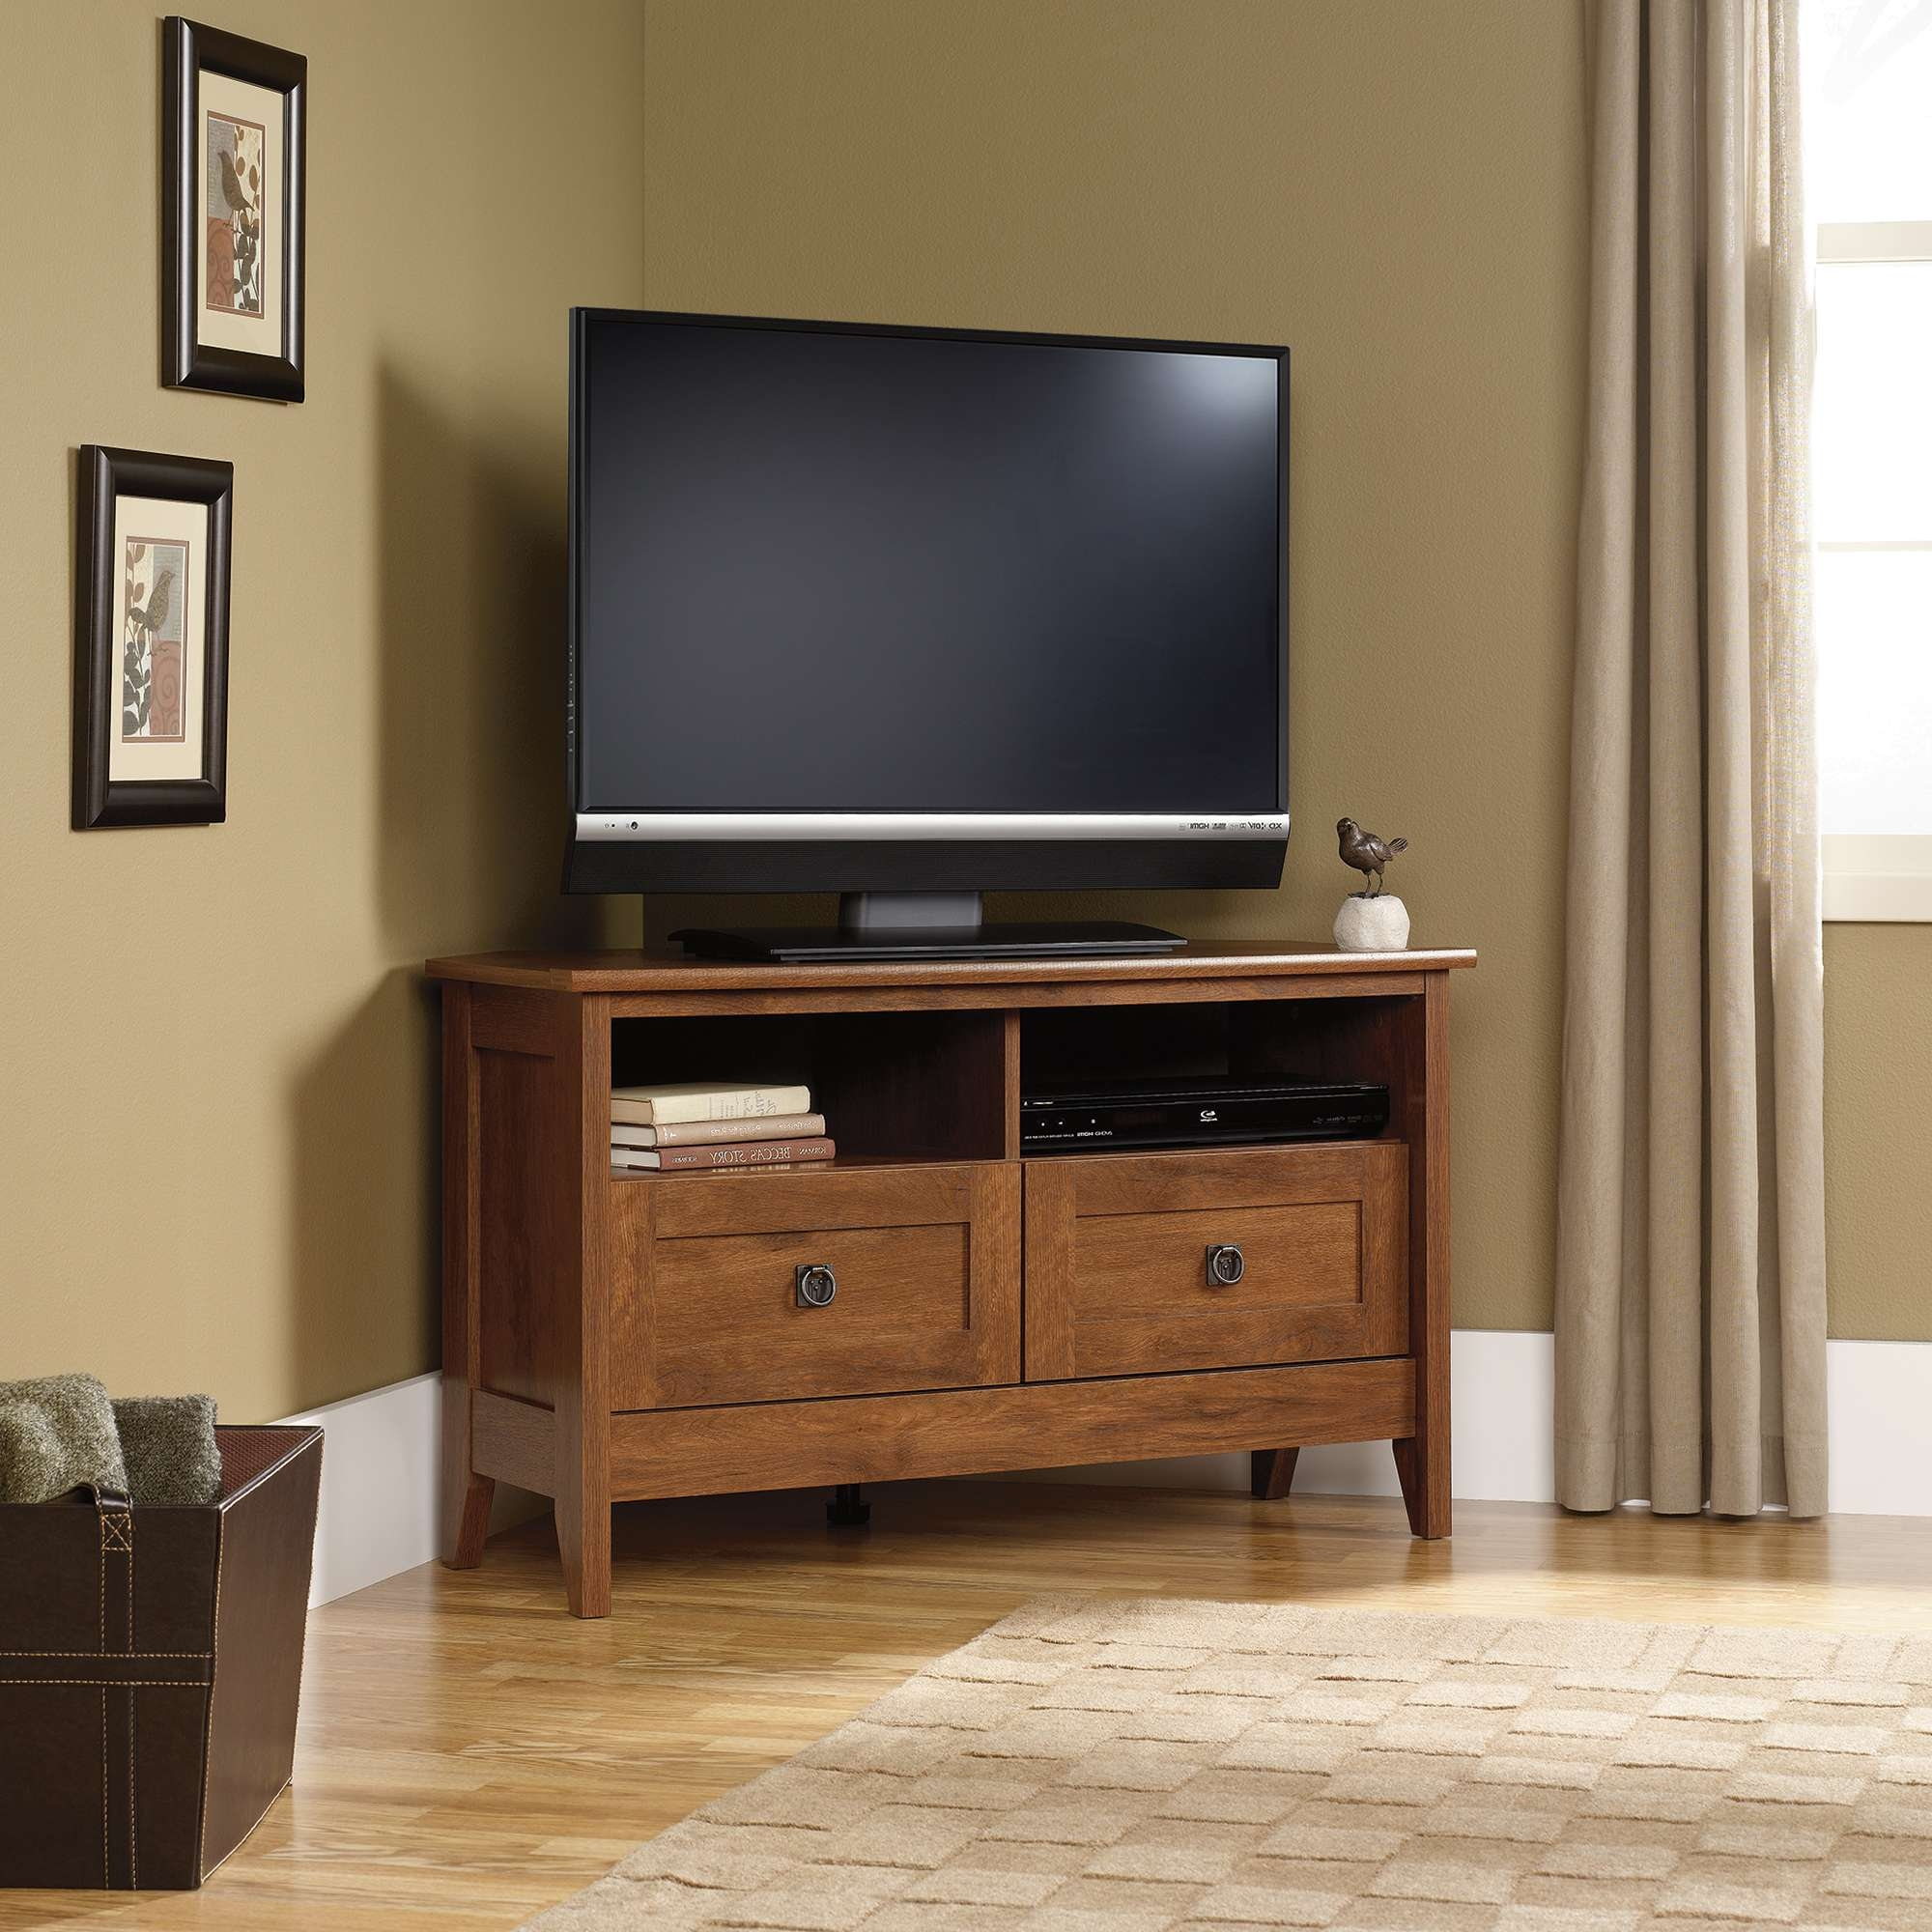 Sauder Select | Corner Tv Stand | 410627 | Sauder In Corner Tv Stands For 50 Inch Tv (View 2 of 20)